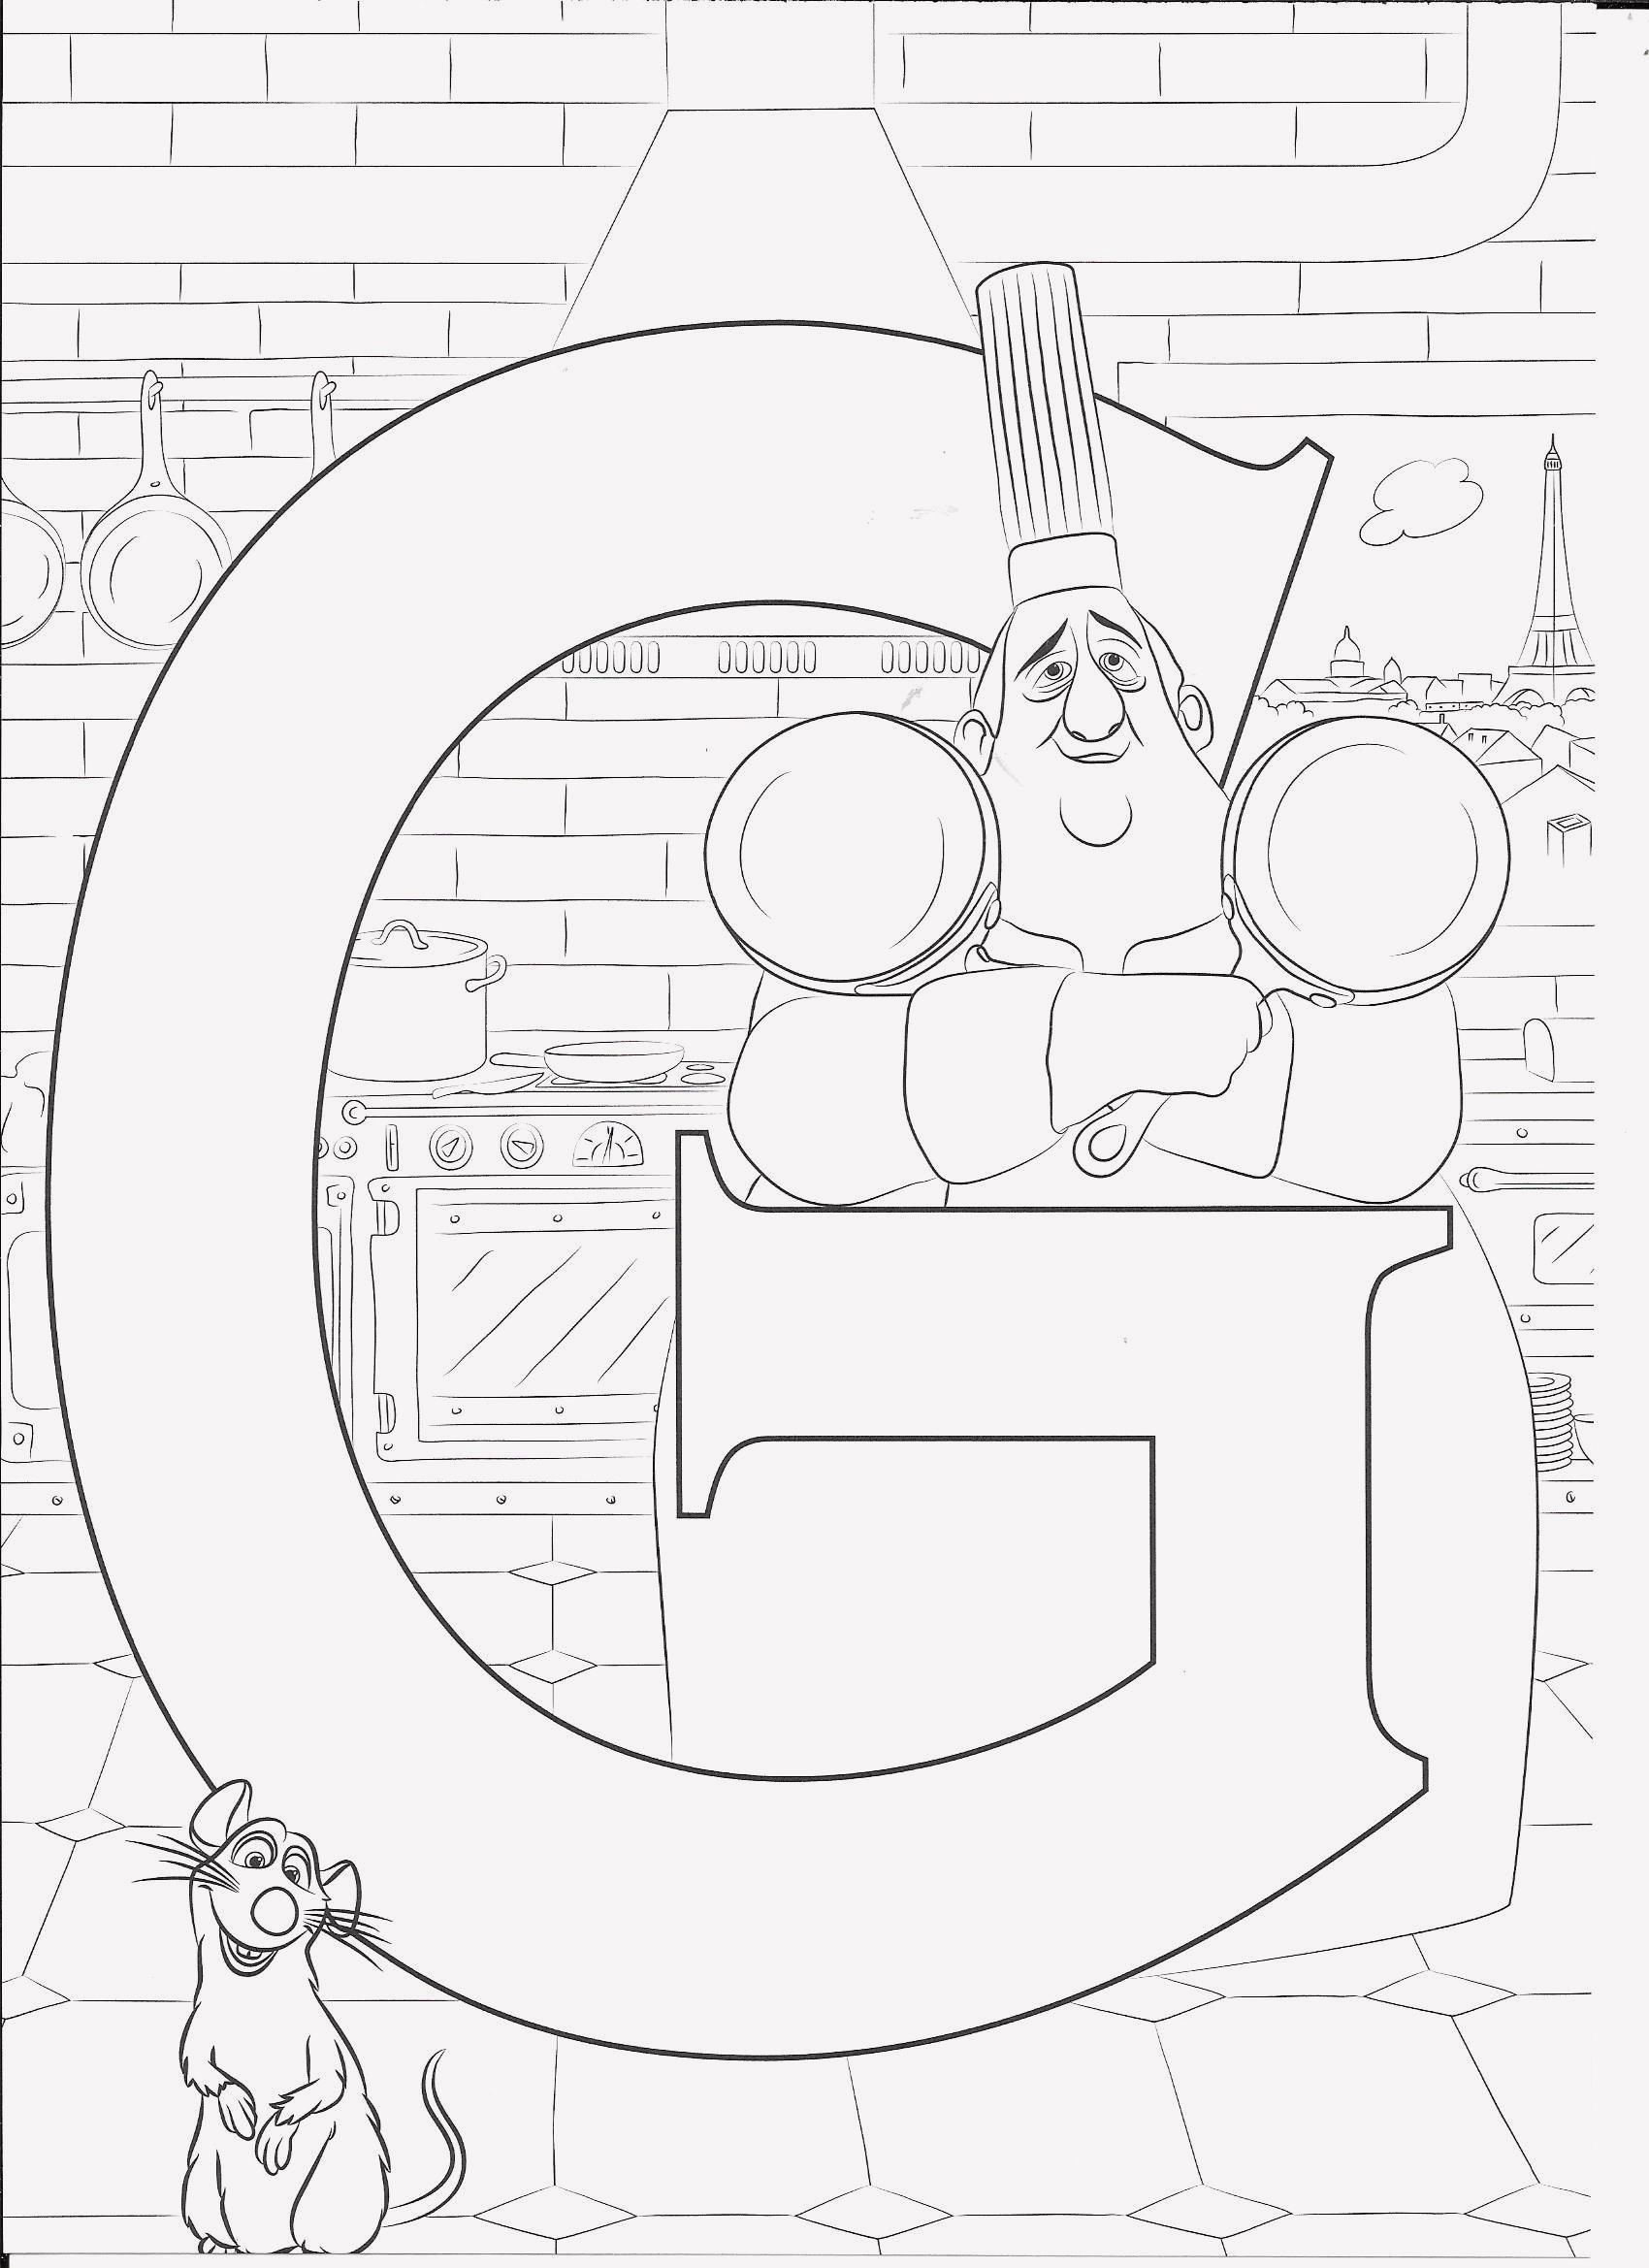 16 Free Printable Letter P Coloring Sheets Abc Coloring Pages Abc Coloring Disney Alphabet